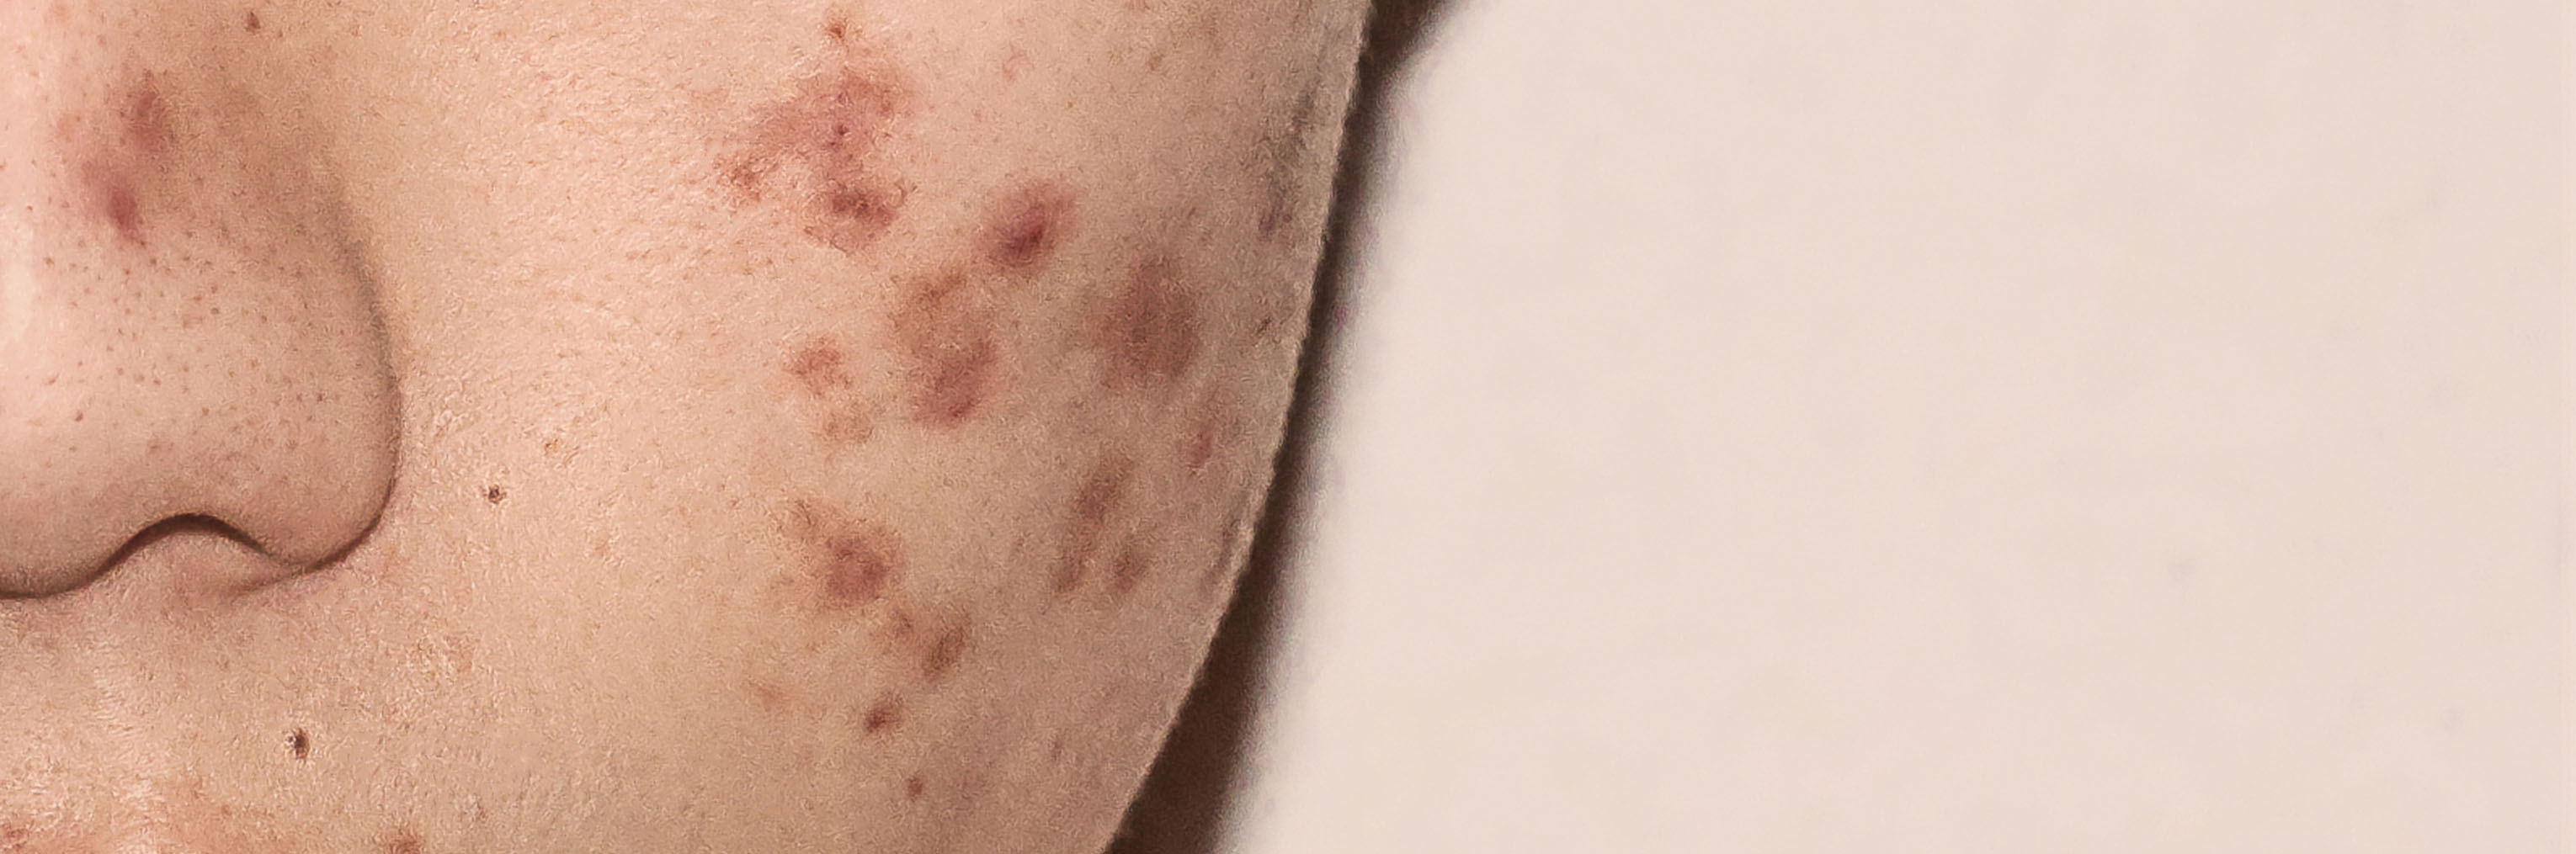 Should I Use Accutane for Severe Acne?